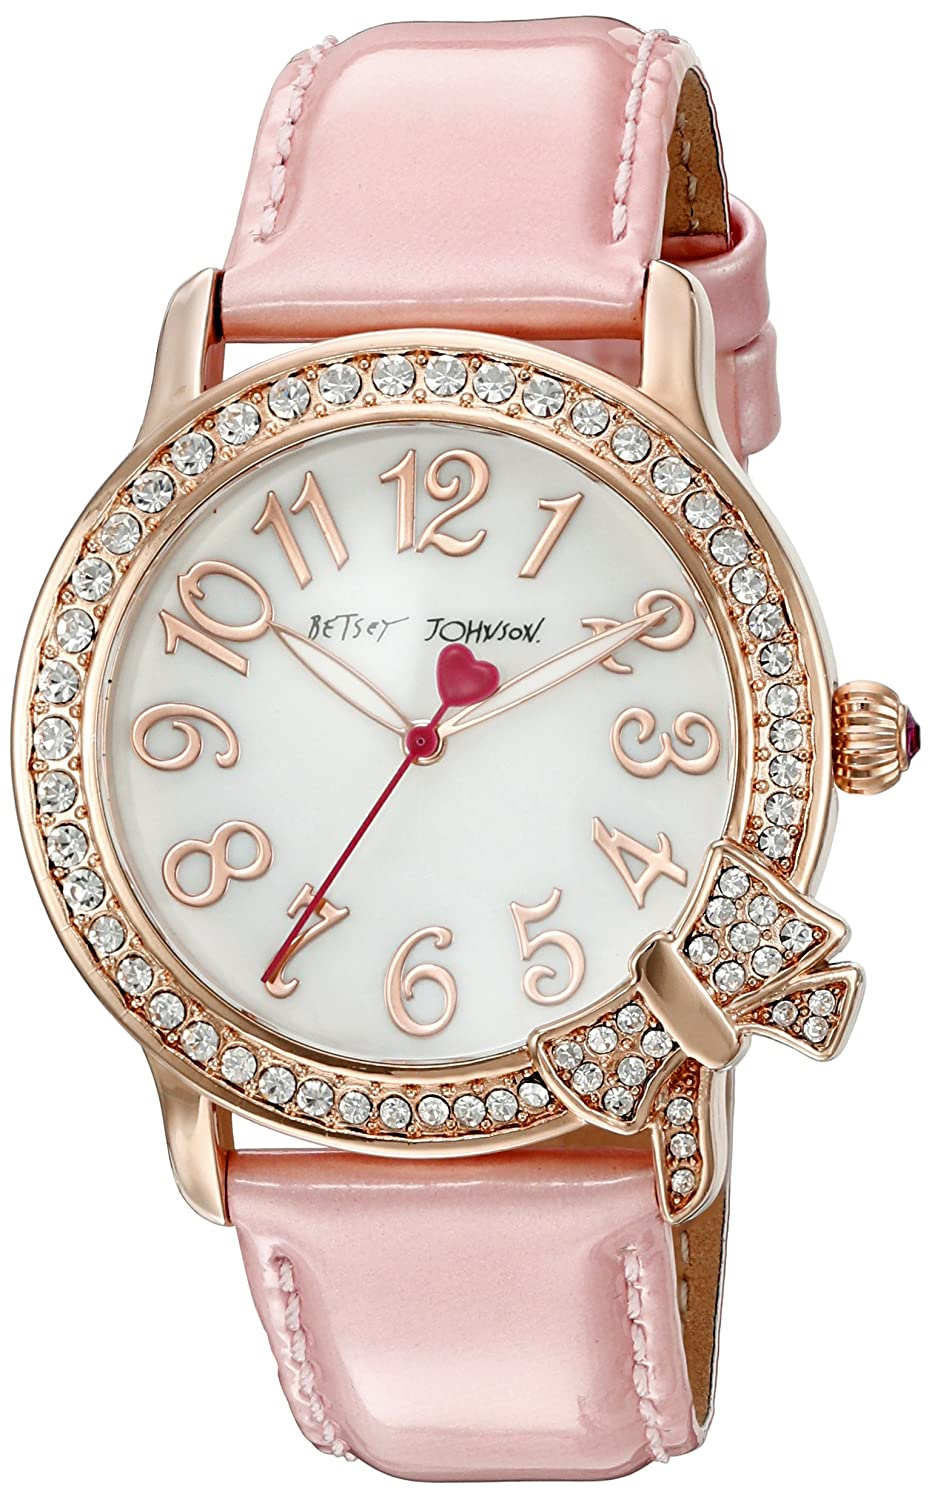 Betsey Johnson Women's BJ00562-03 Analog Display Quartz Pink Watch